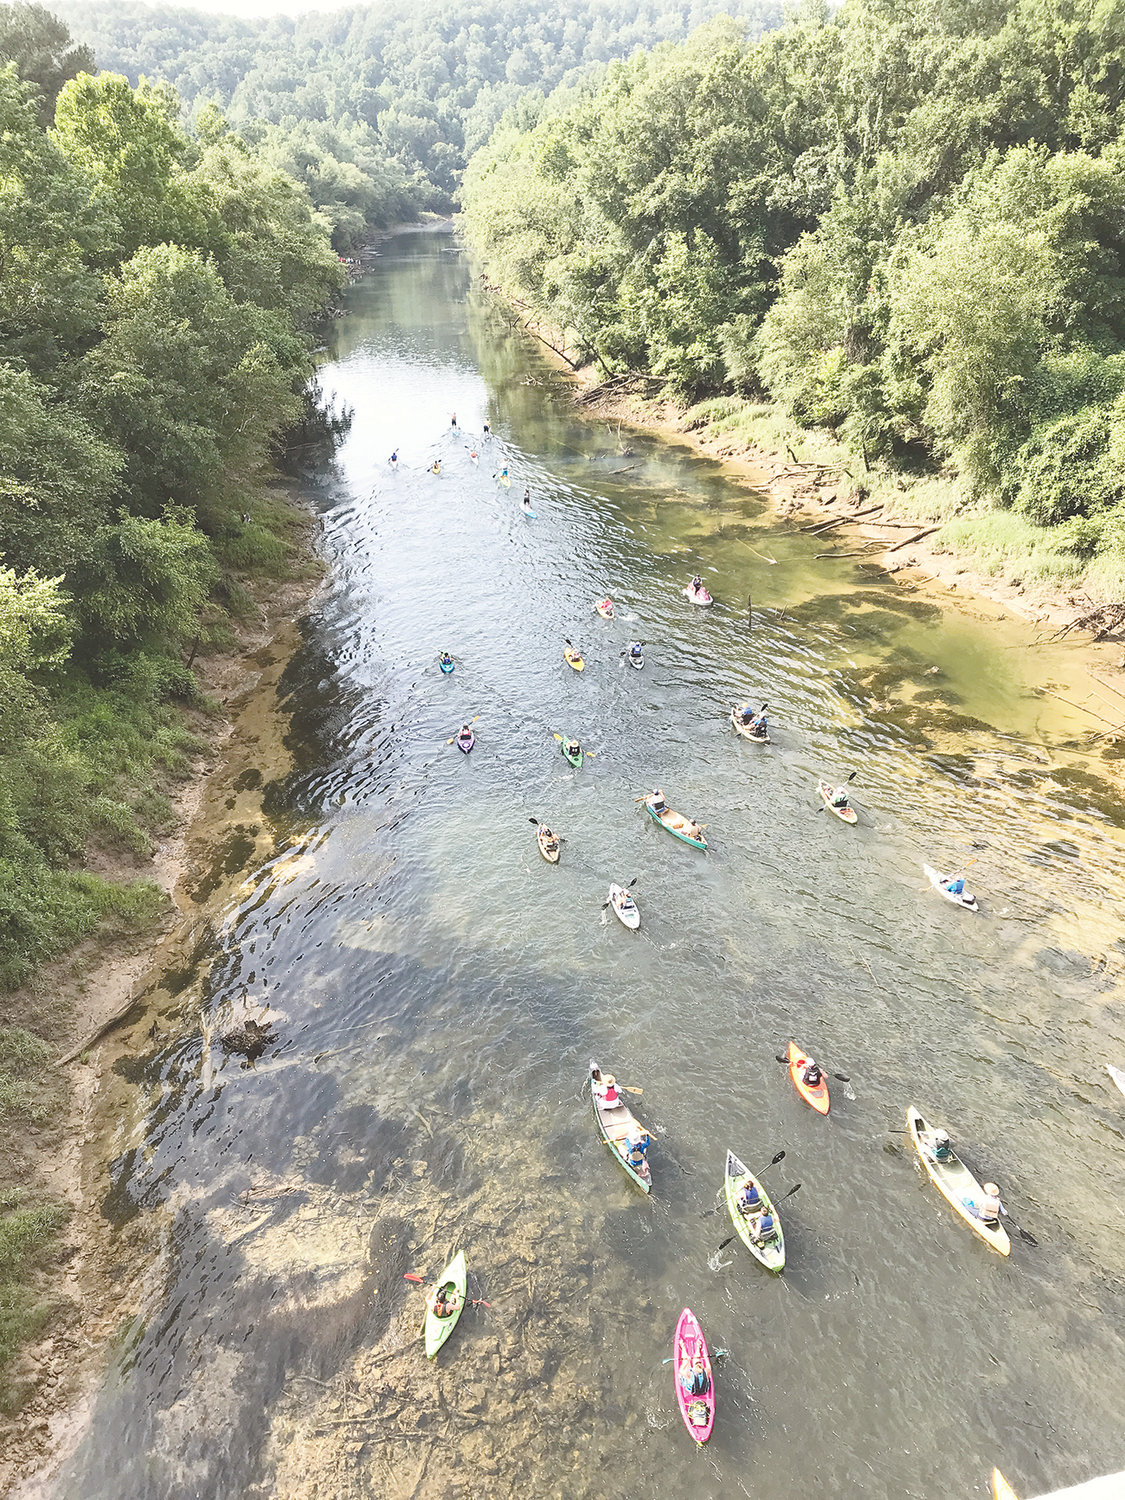 More than 50 people participated in last year's Sipsey River Race. This year's event, set for June 22, has been canceled because the water is not safe for human recreation.